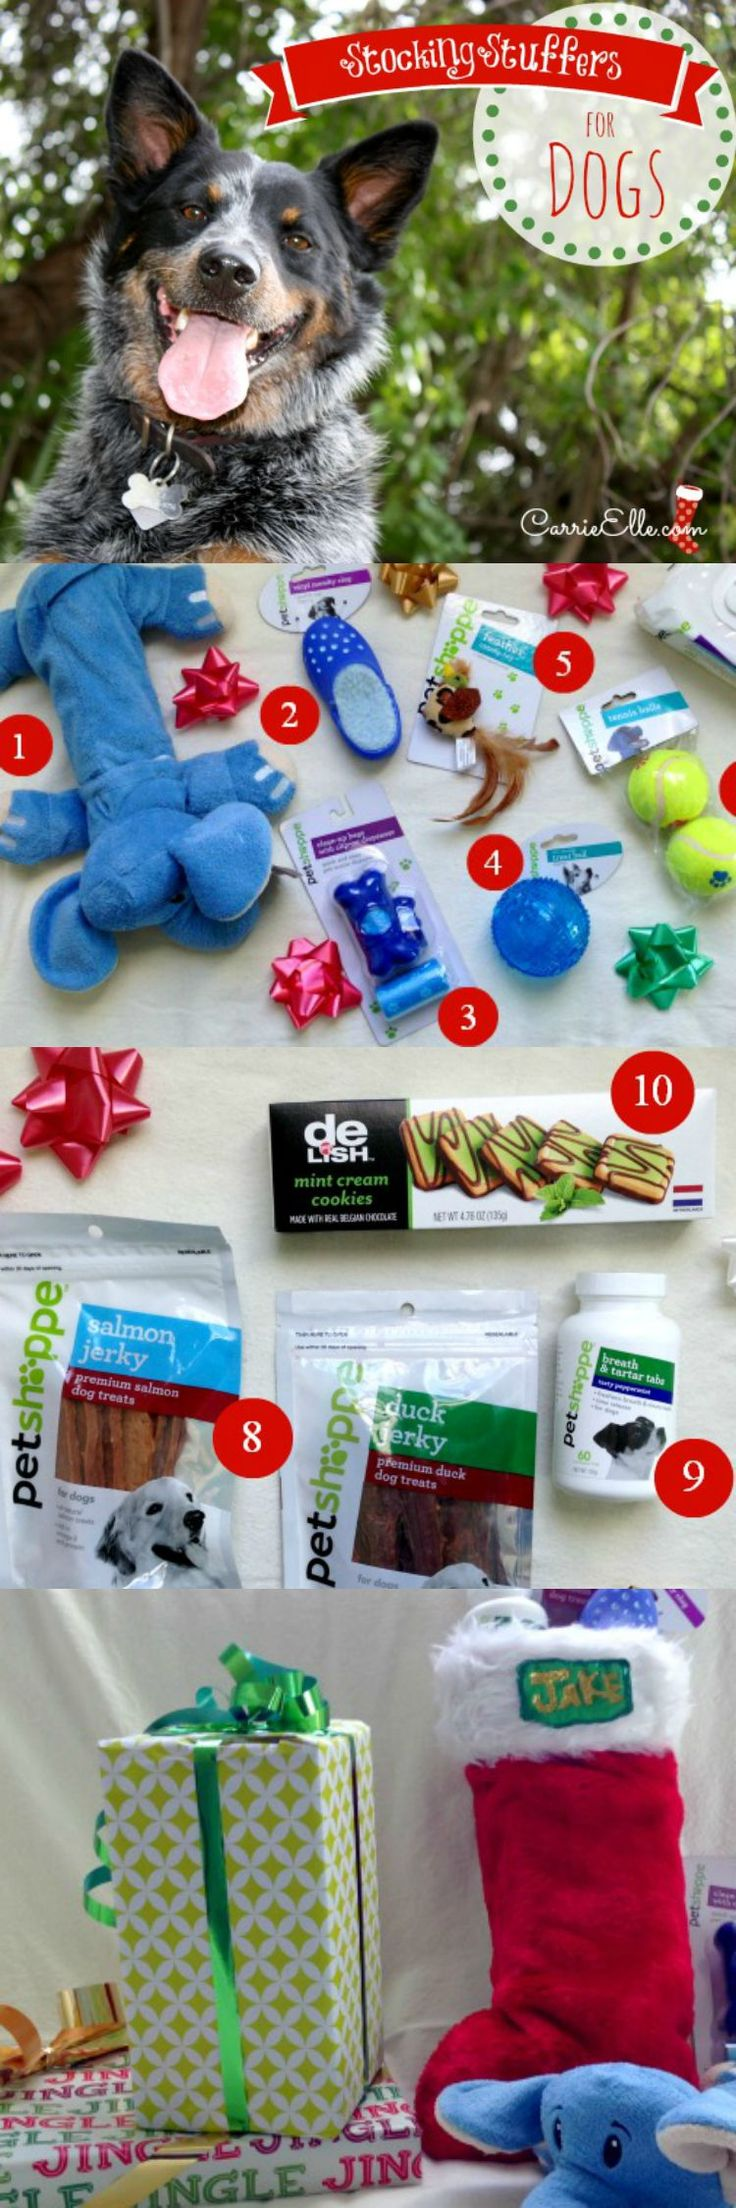 10 fun stocking stuffers for dogs!